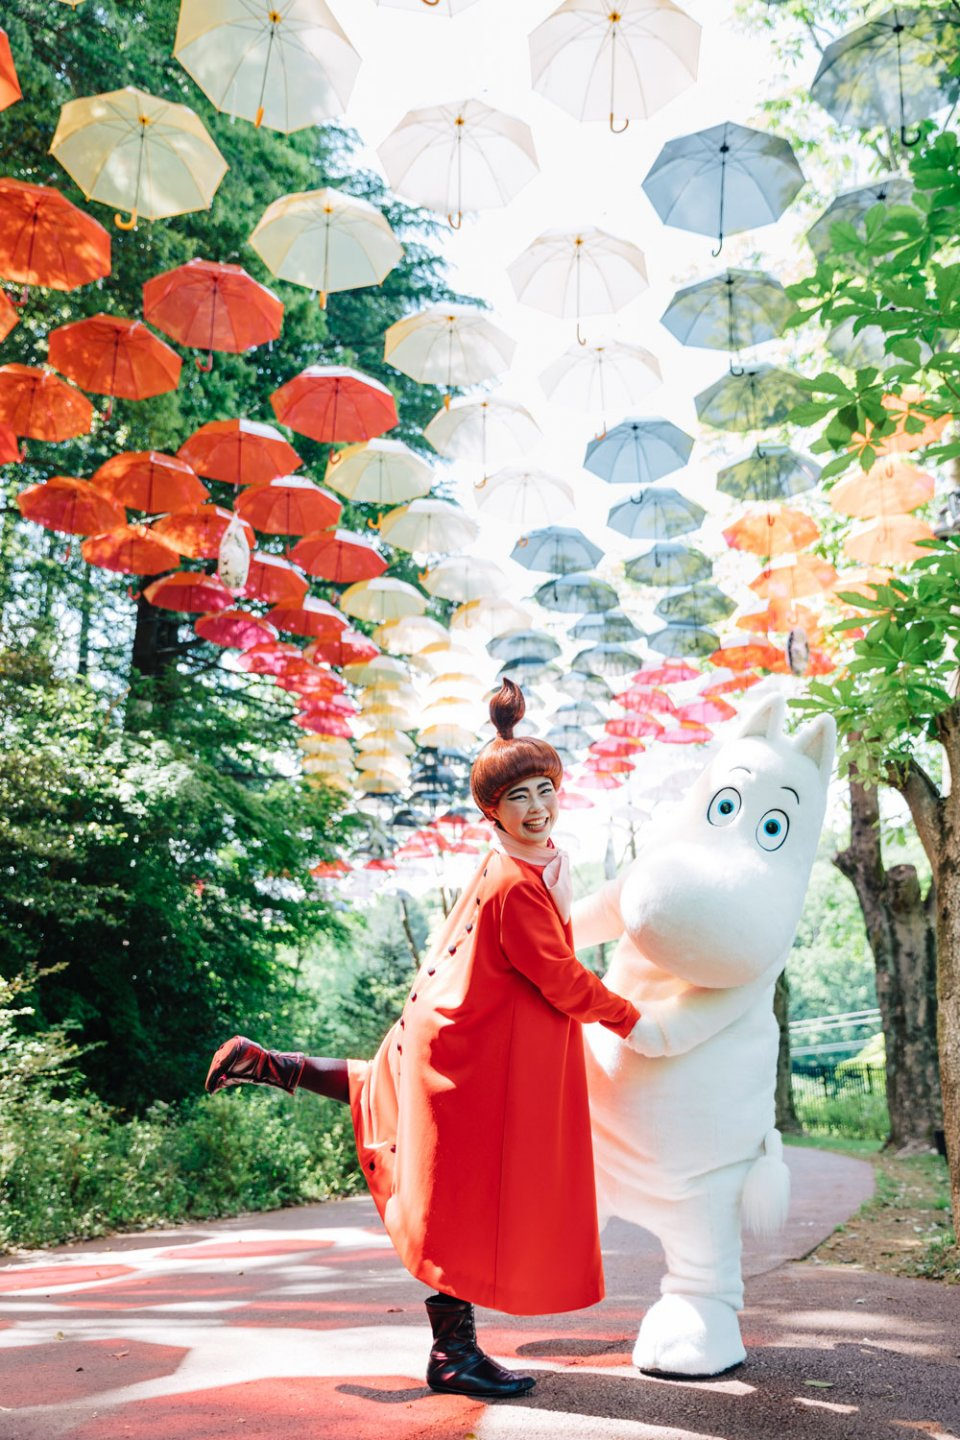 Moominvalley_Park_Umbrella_Sky_Hug_Hanno_Japan_Hanno_Moomintroll_Little_My